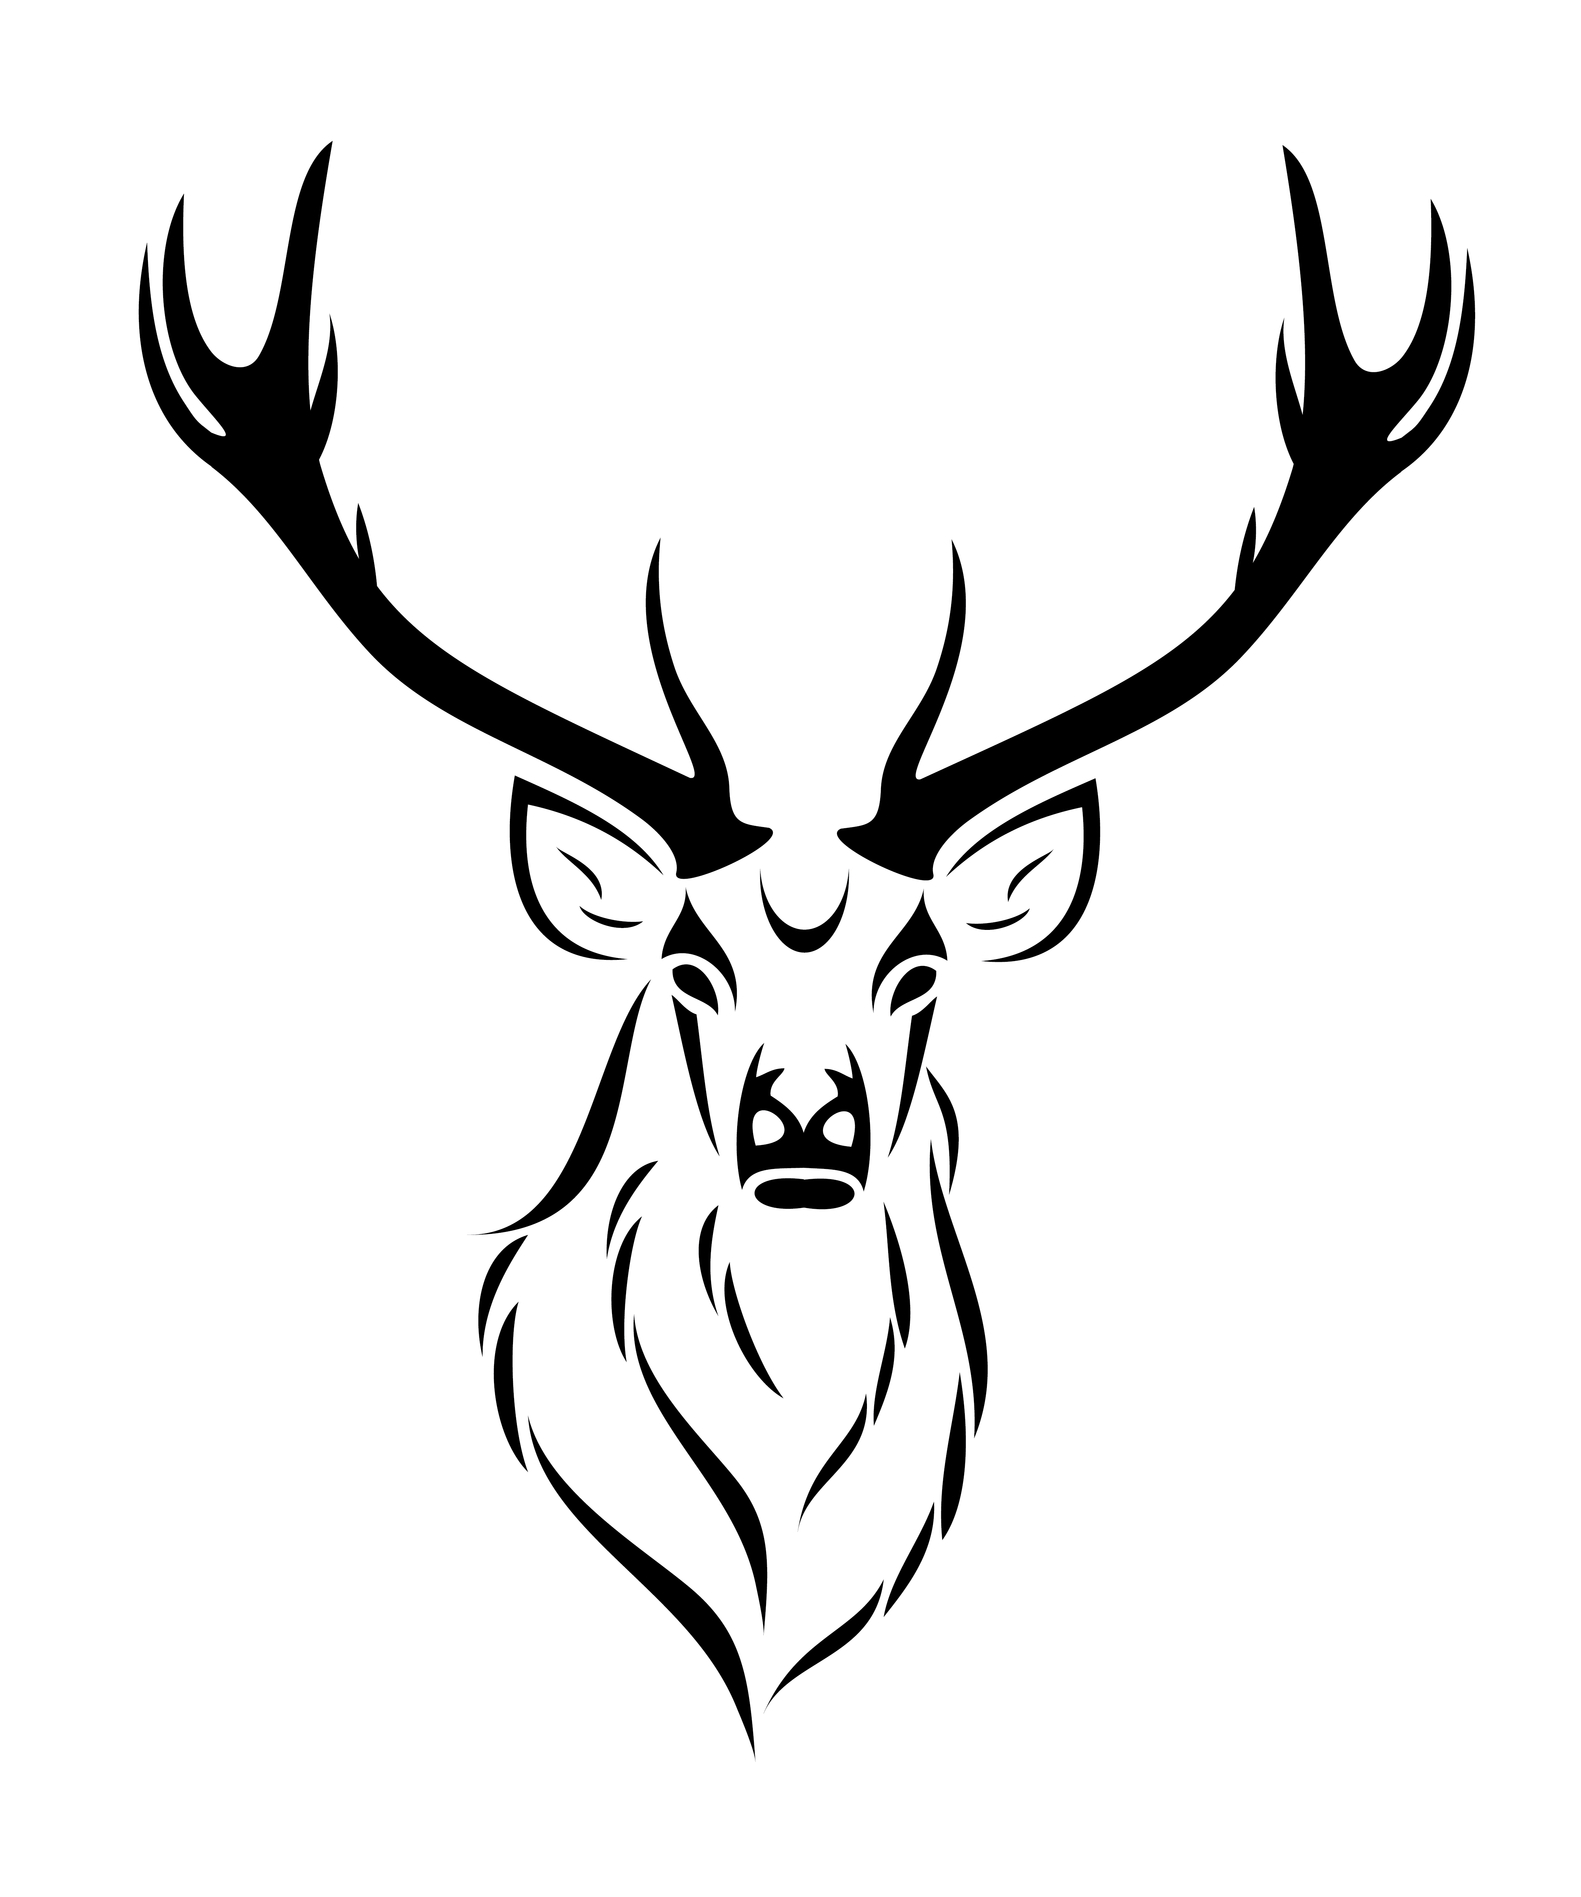 free online personals in white deer Piebald deer - nj division of  hunters and other outdoor enthusiasts sometimes report seeing an albino or partially white deer  download the free pdf reader .